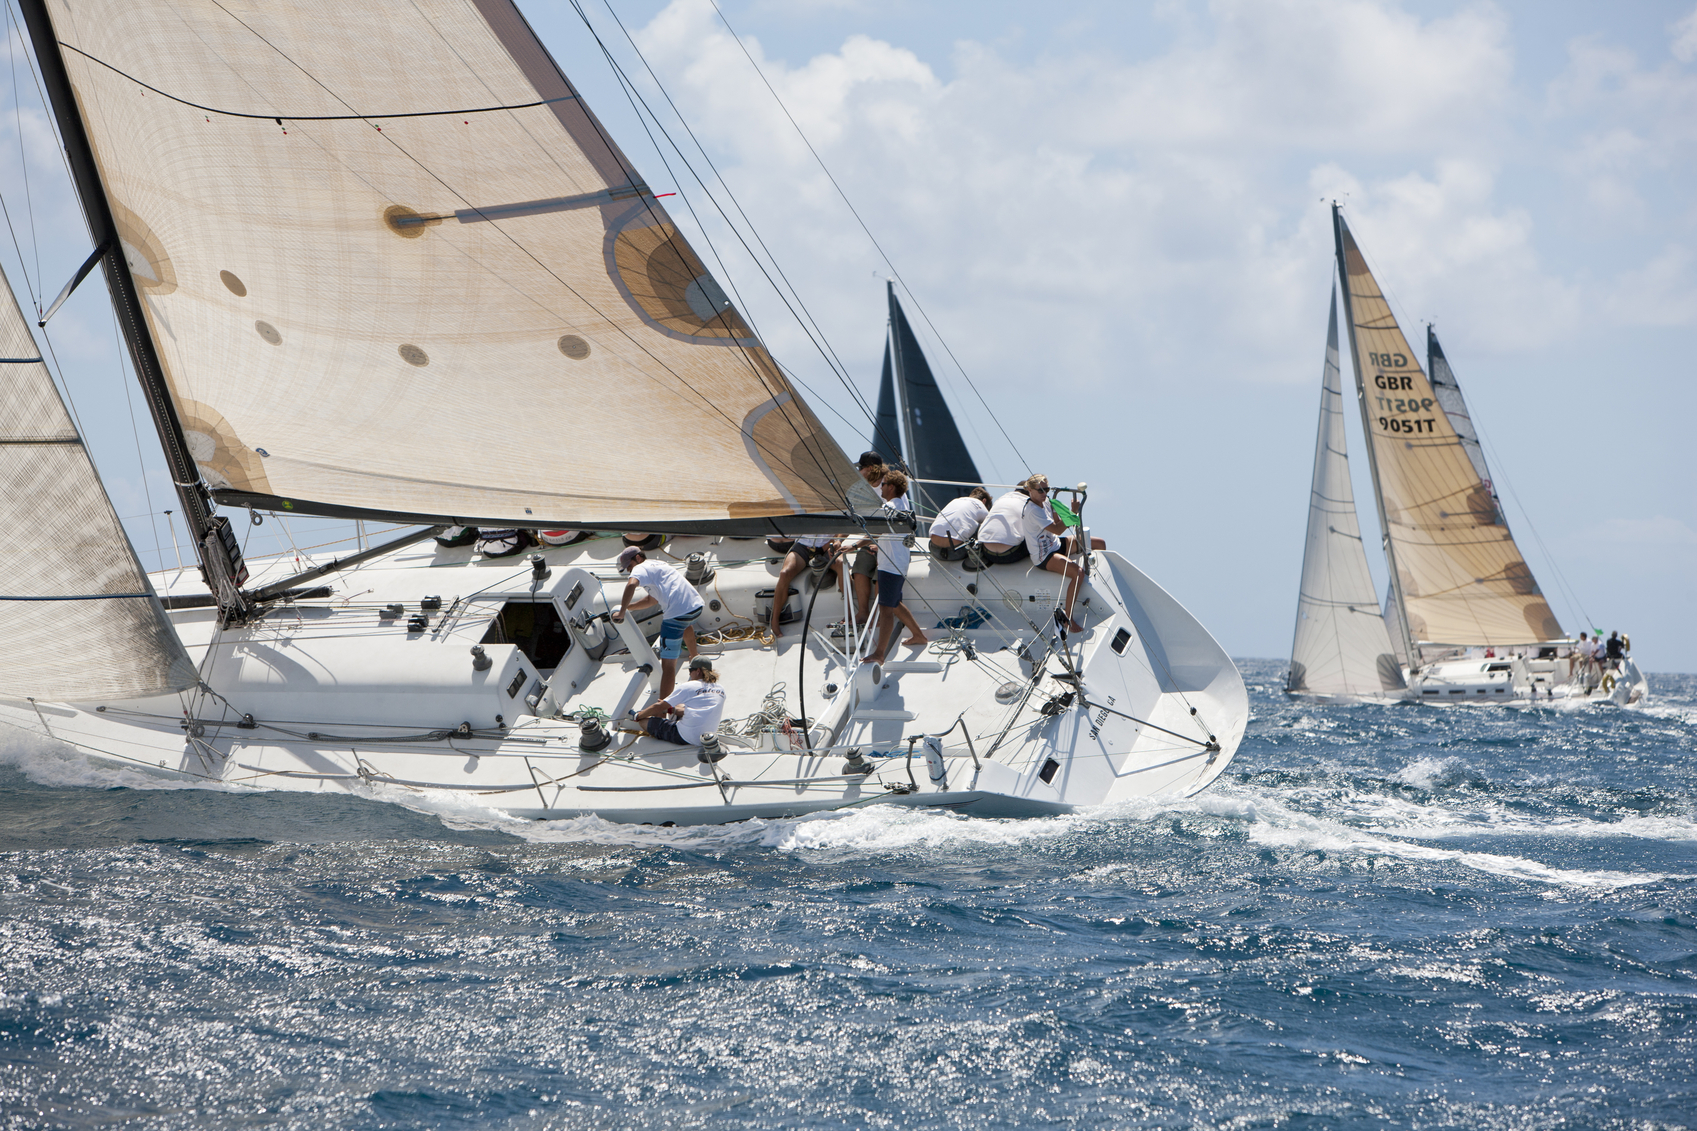 "Caribbean Sea between St. Thomas and St. John, US Virgin Islands - March 30, 2014: sailing crew on a sailboat ""Falcon"" (USA) racing in 2014 St. Thomas International Regatta"